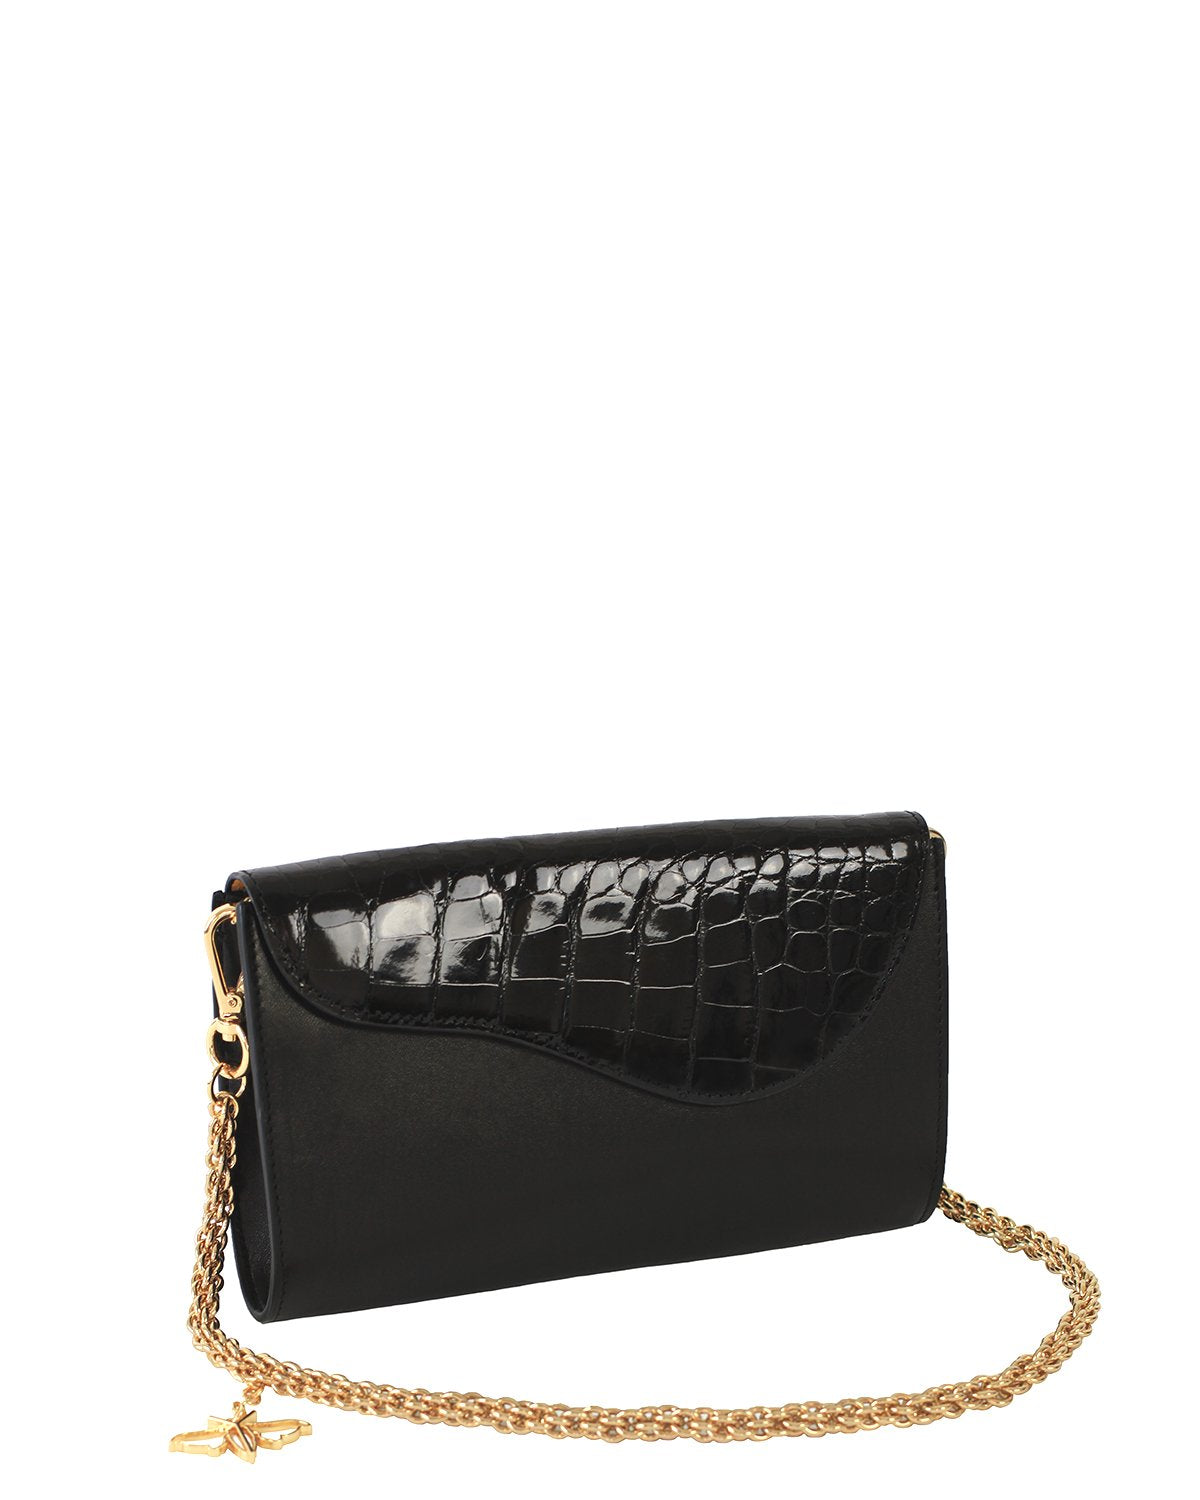 BLACK GRAY ALLIGATOR OSTRICH OSCAR CLUTCH YELLOW GOLD YARA BASHOOR ANGLE VIEW